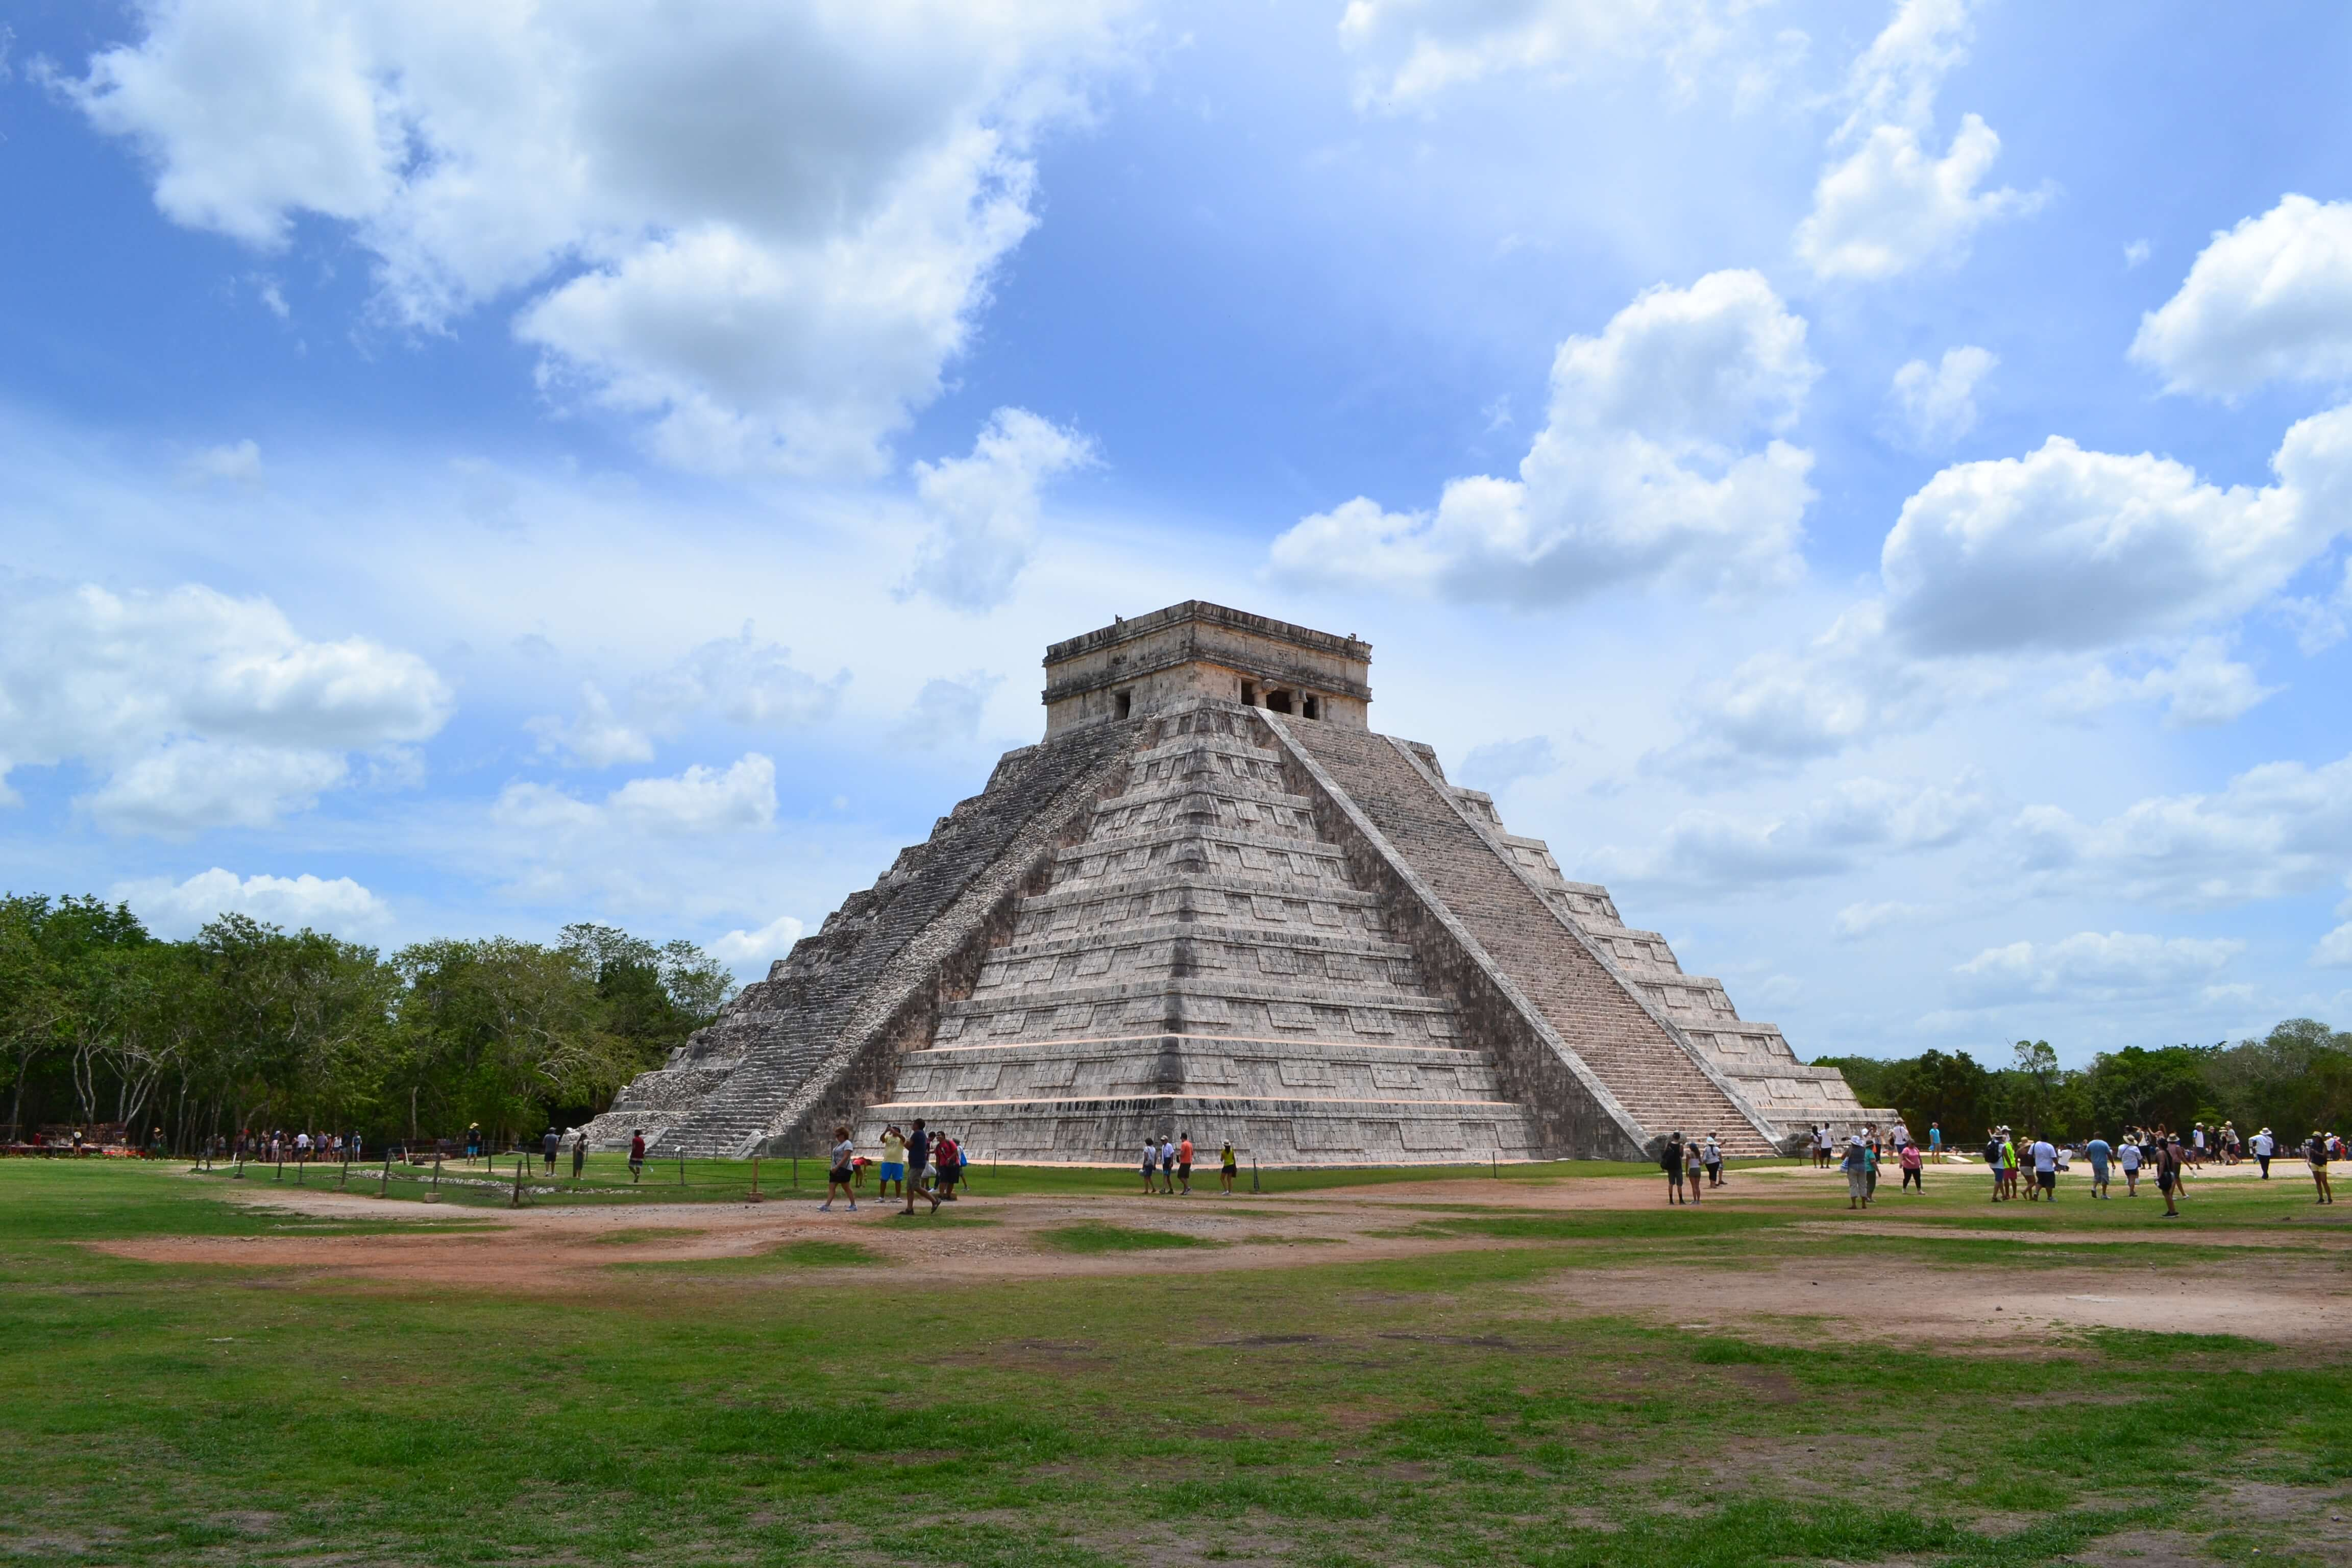 Visiting Chichen Itza: Exploring The Most Popular Mayan Ruin On The Summer Solstice